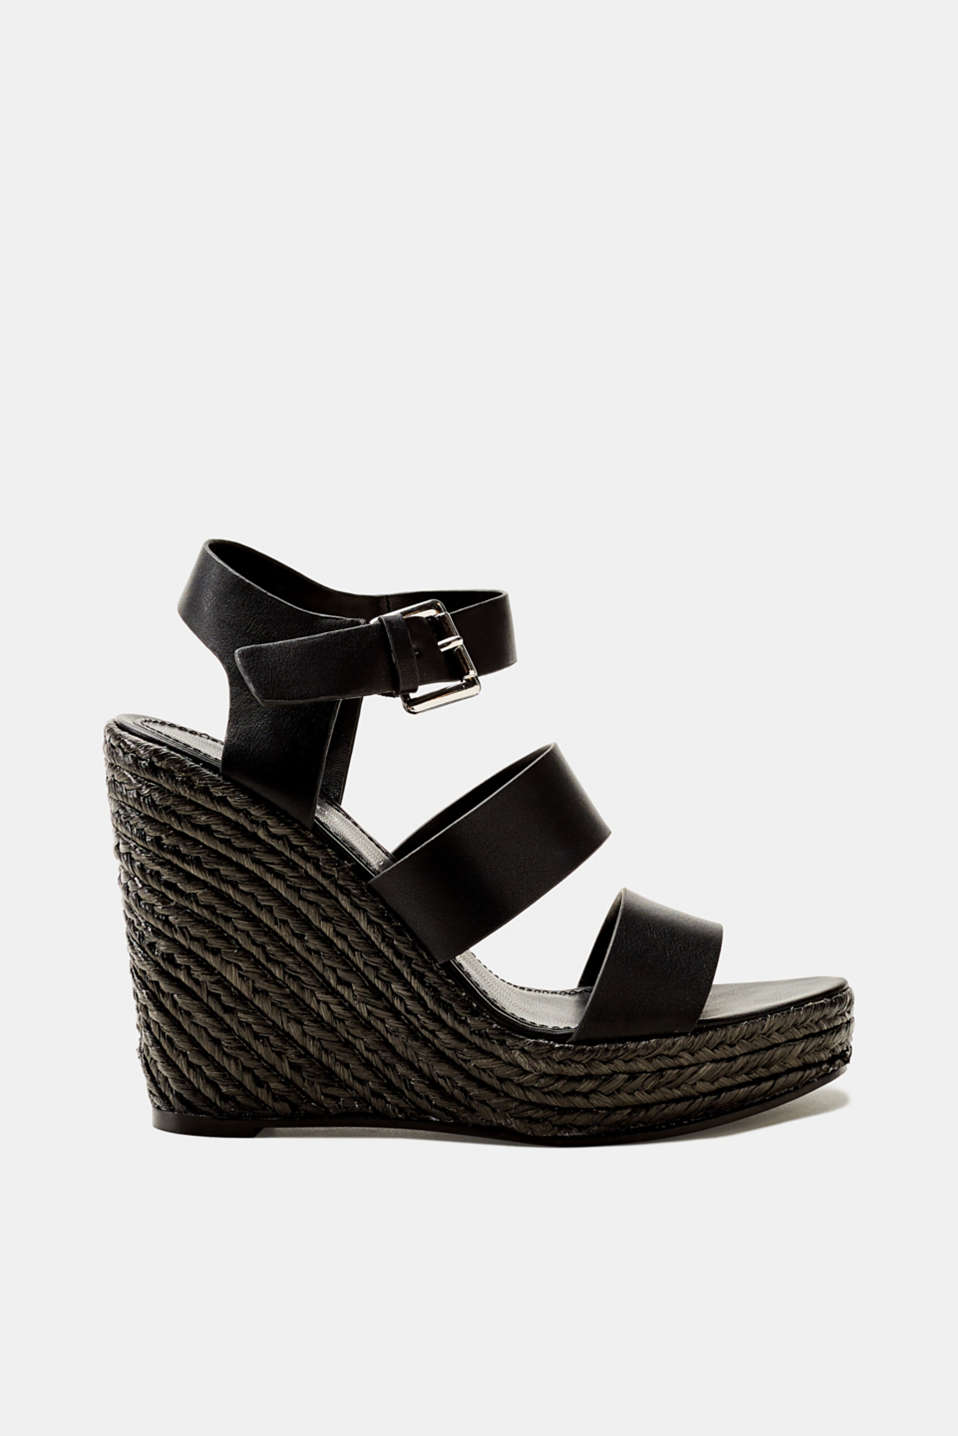 Esprit - Faux leather wedge sandals trimmed with bast